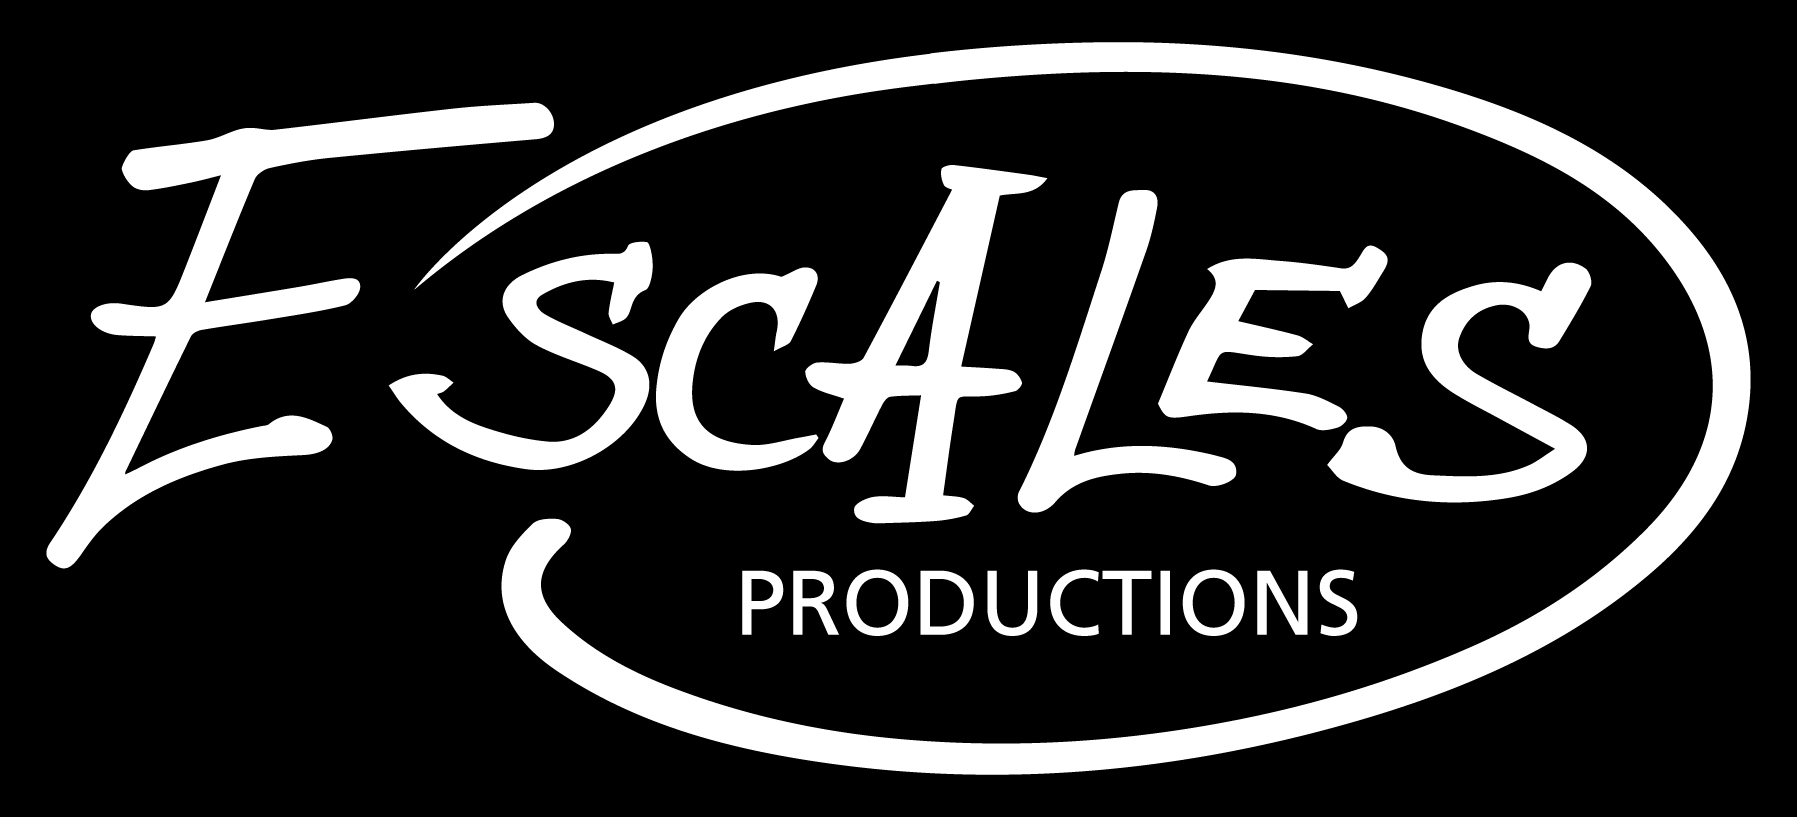 Escales Productions